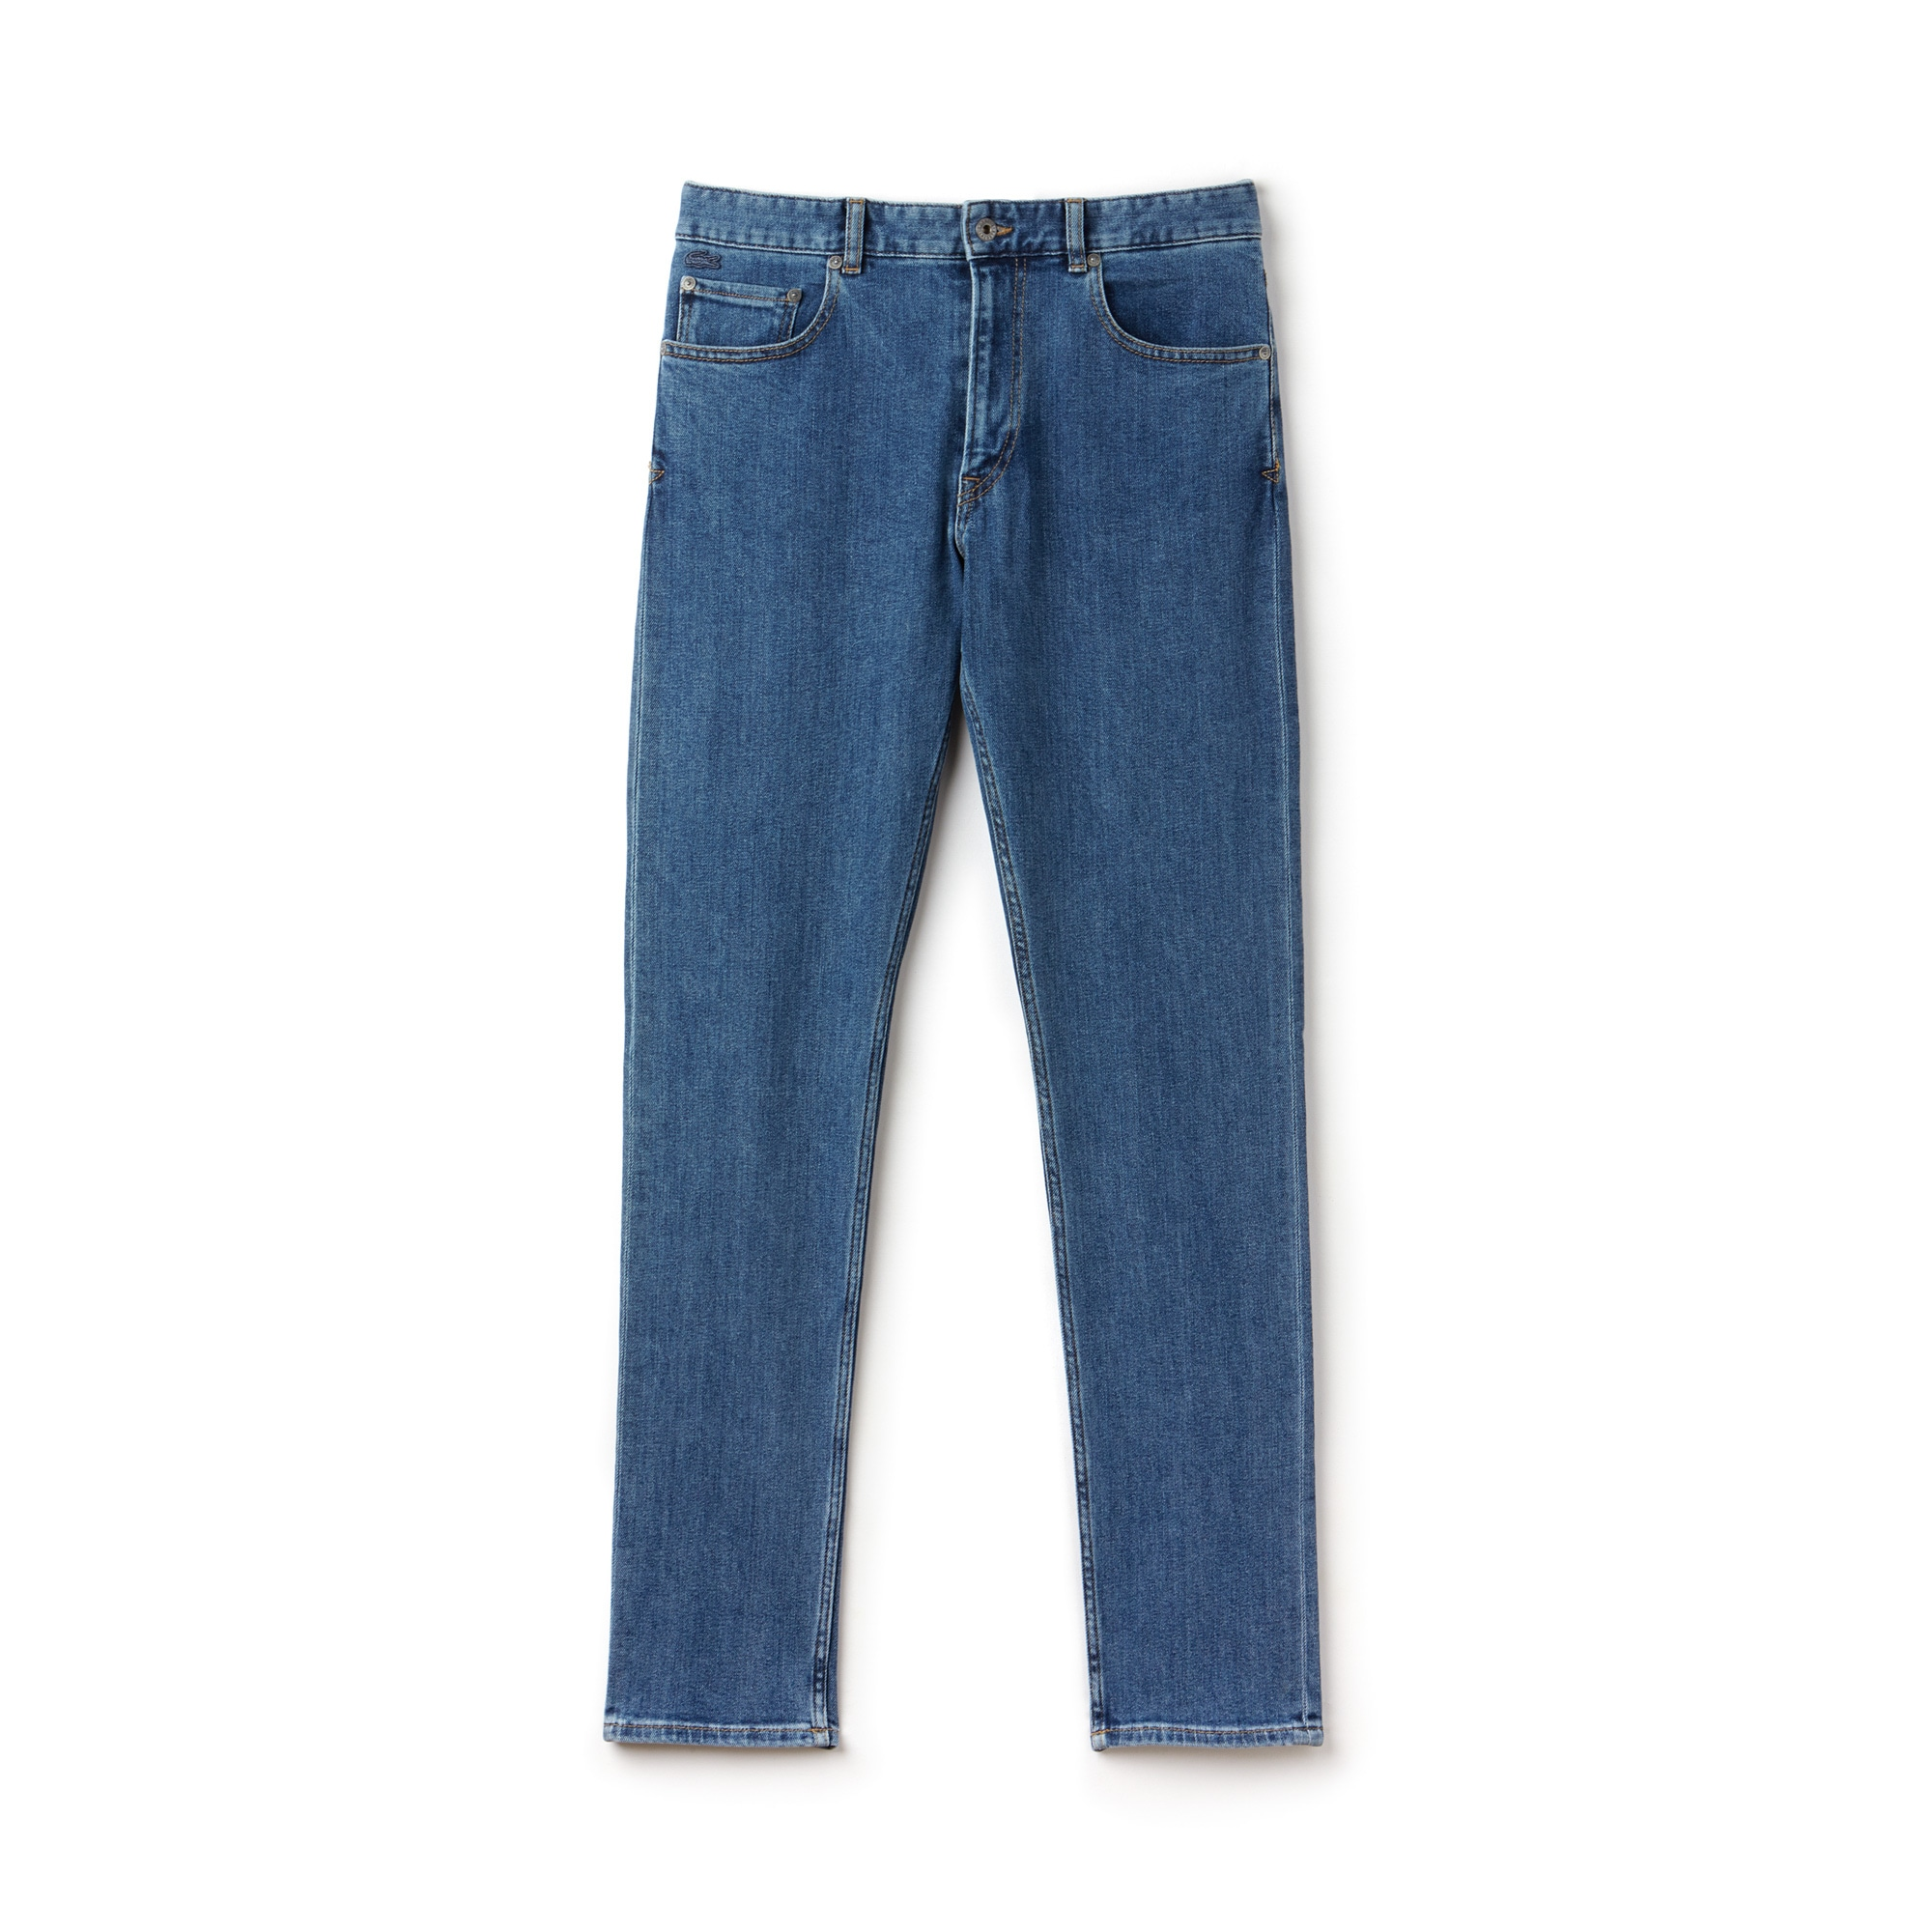 Men's Slim Fit 5 Pocket Stretch Cotton Denim Jeans